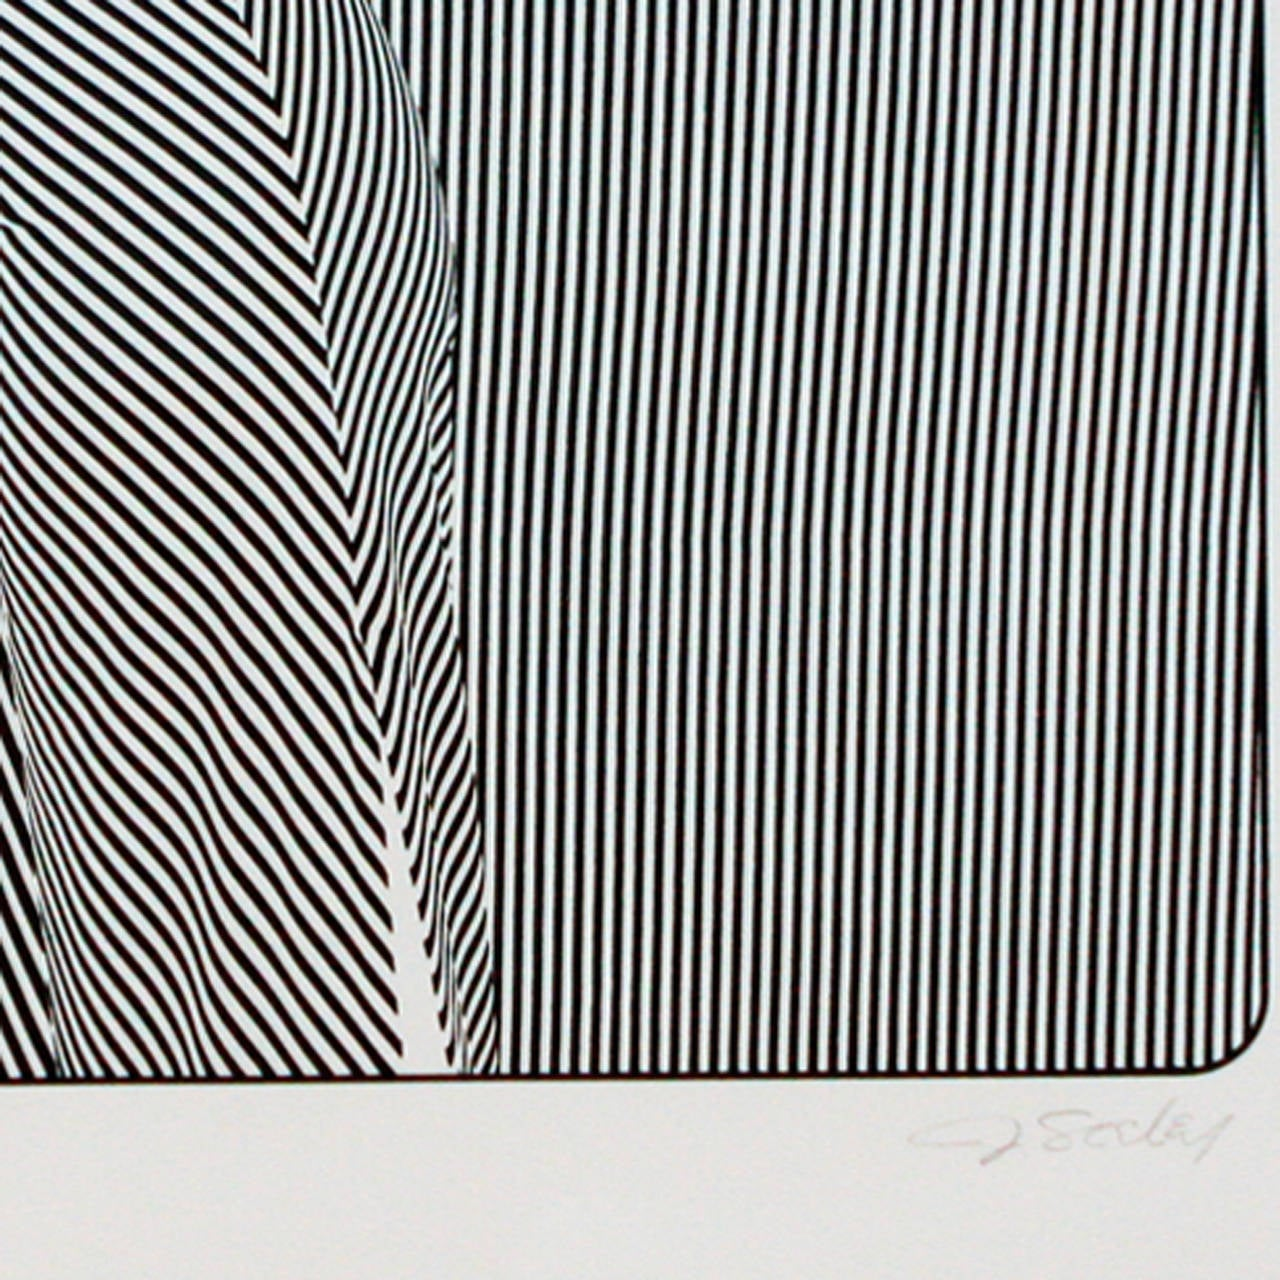 American Op Art Lithograph, J Seeley For Sale